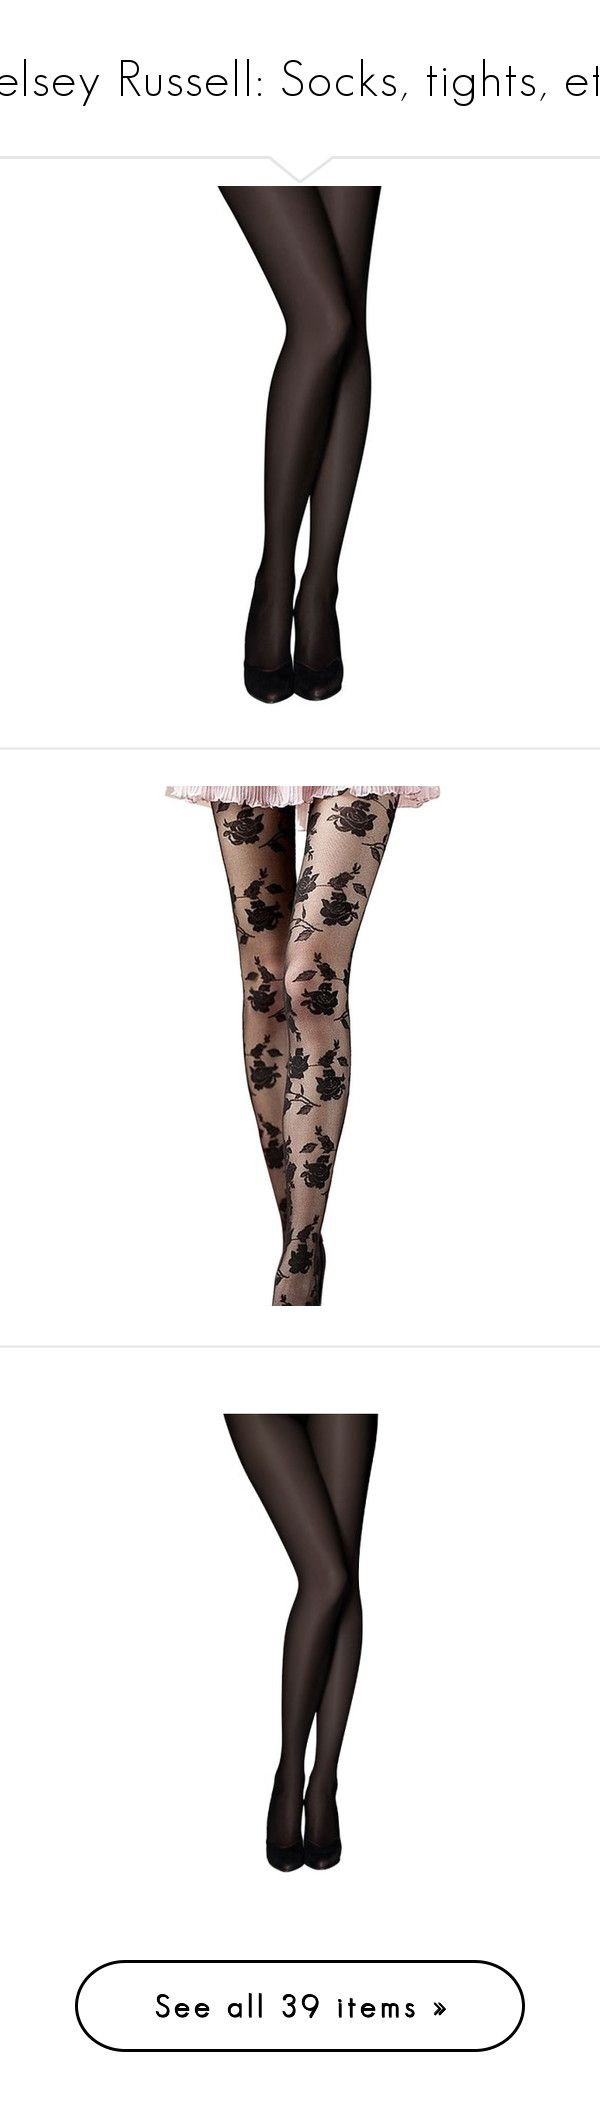 """""""Kelsey Russell: Socks, tights, etc."""" by nerdbucket ❤ liked on Polyvore featuring intimates, hosiery, tights, socks, accessories, black, opaque stockings, opaque hosiery, opaque pantyhose and opaque tights"""